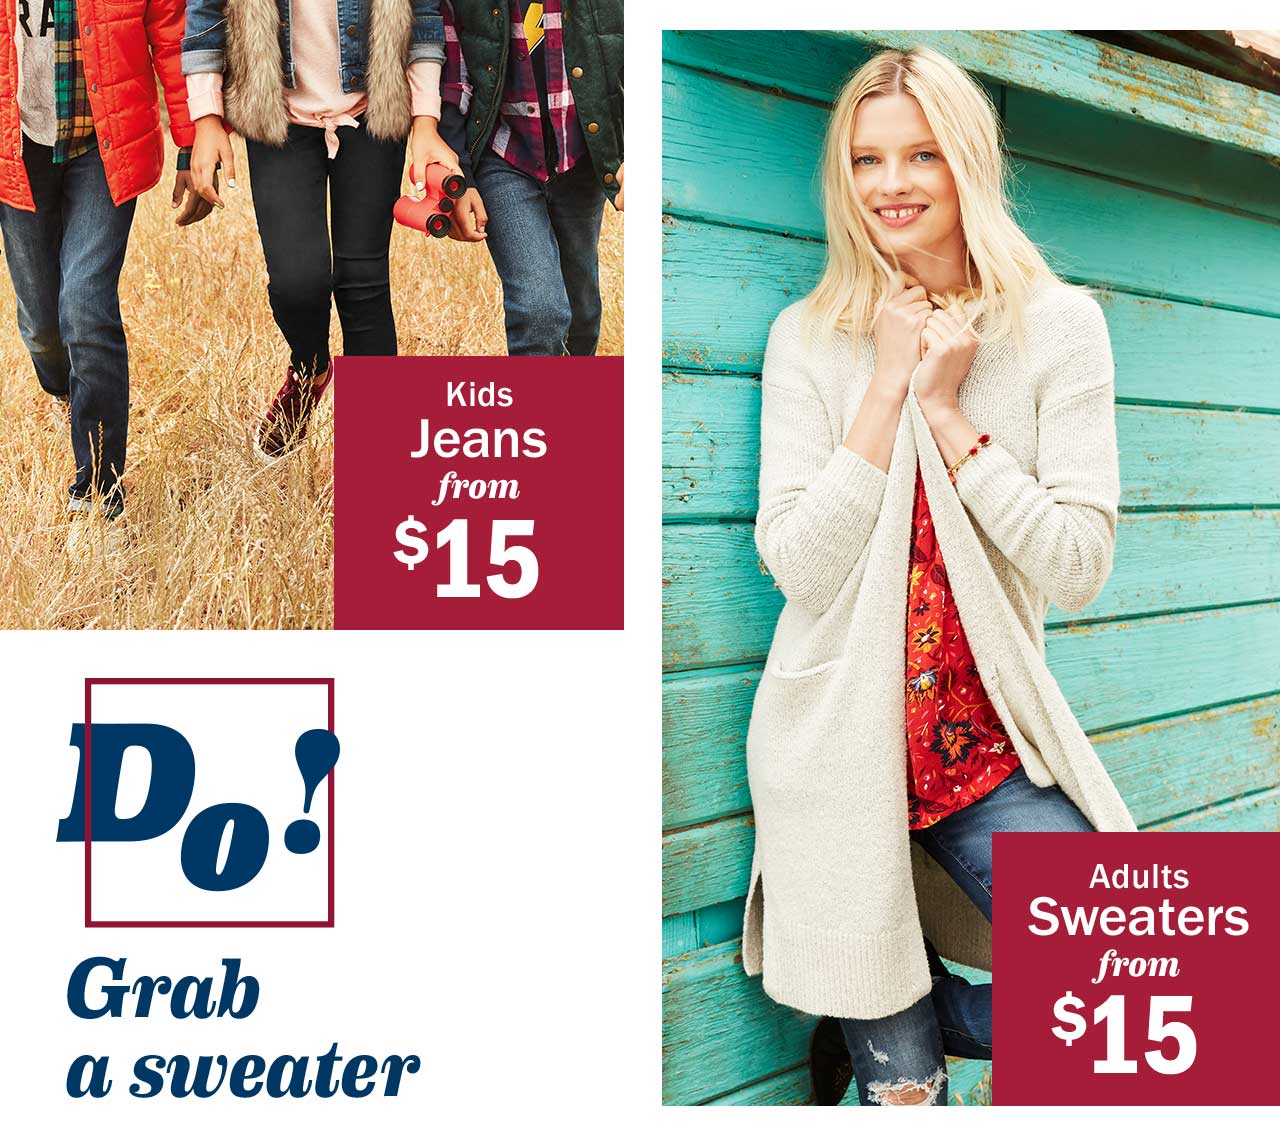 Kids Jeans from $15 | Do! Grab a sweater | Adults Sweaters from $15